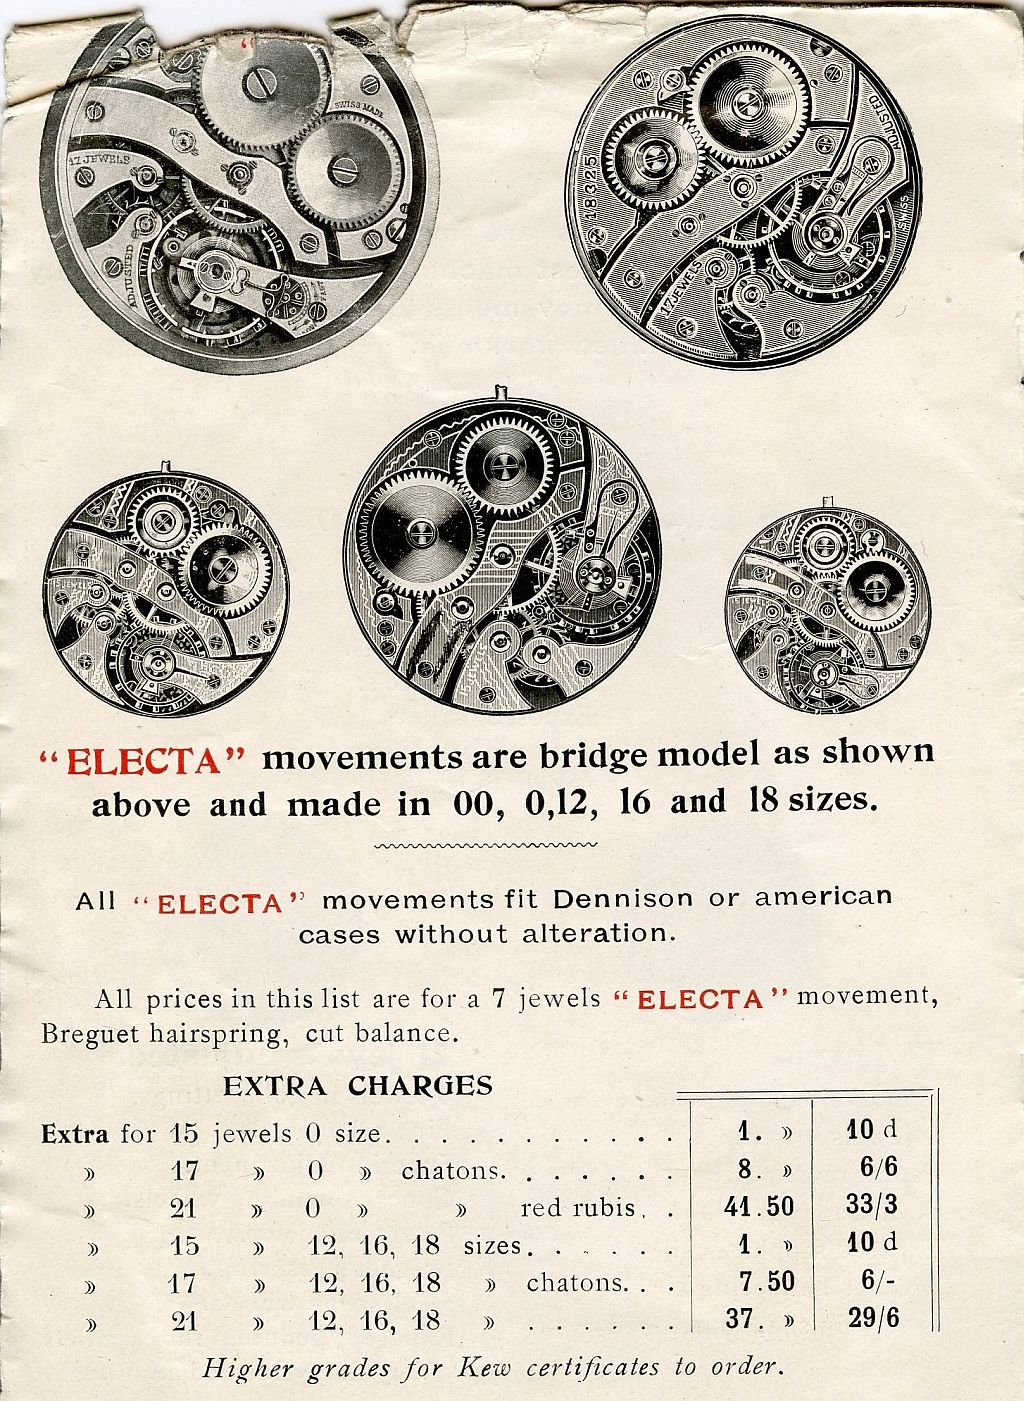 pocket watch movement diagram vn v8 ecu wiring technical details electa catalogue 1914